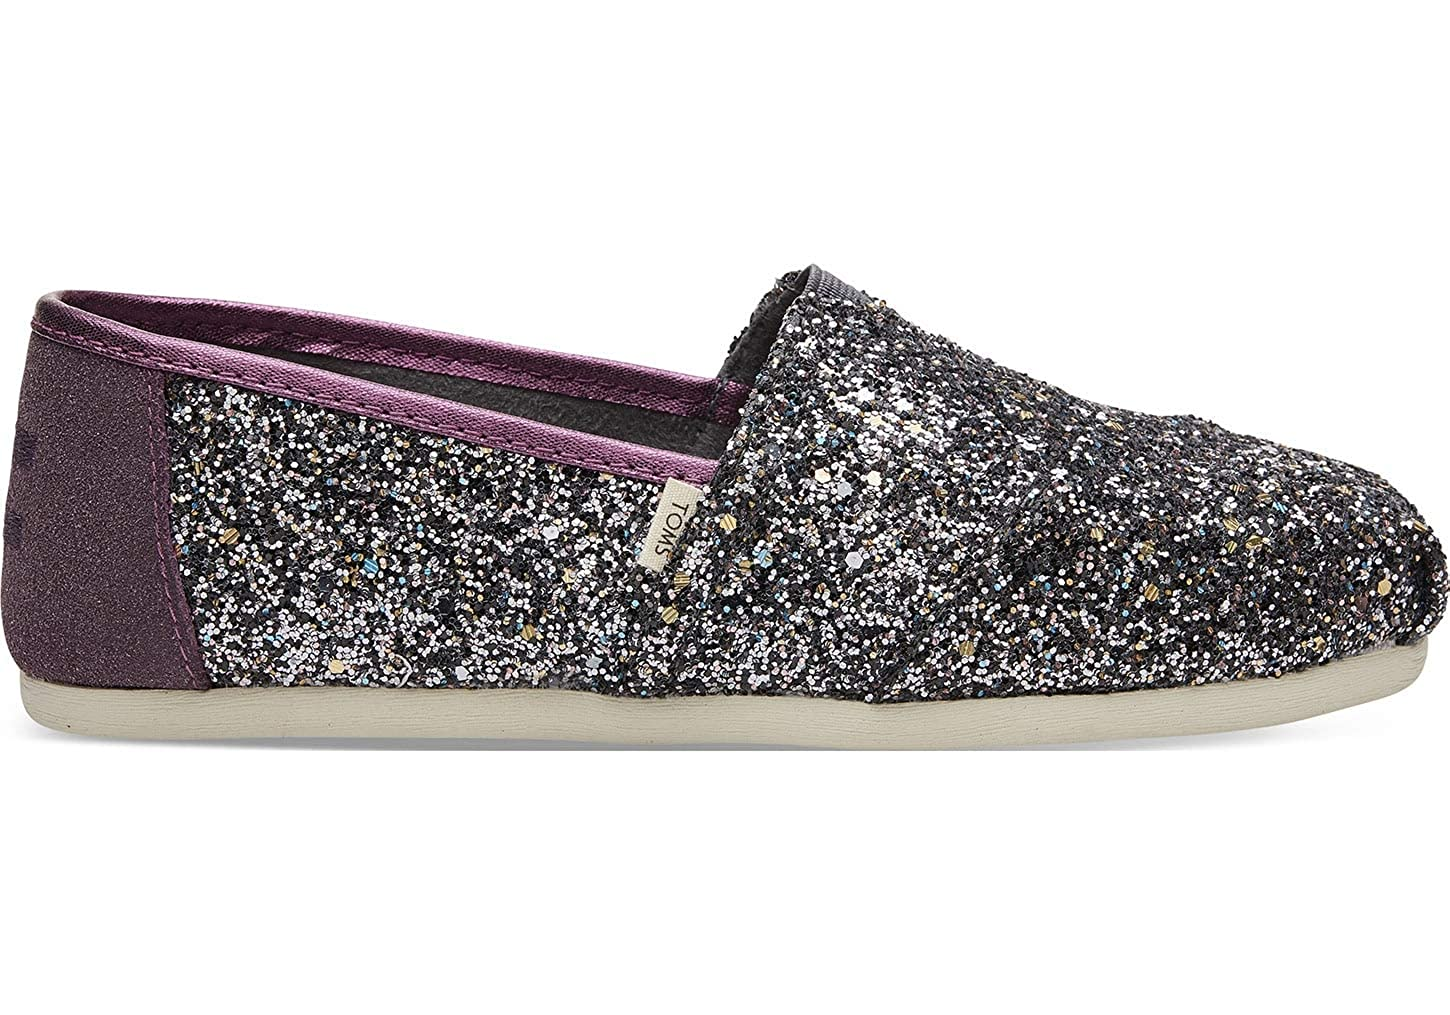 a771e4dd783 Toms womens alpargata pewter party glitter vegan us fashion sneakers jpg  1450x1015 Purple glitter toms shoes